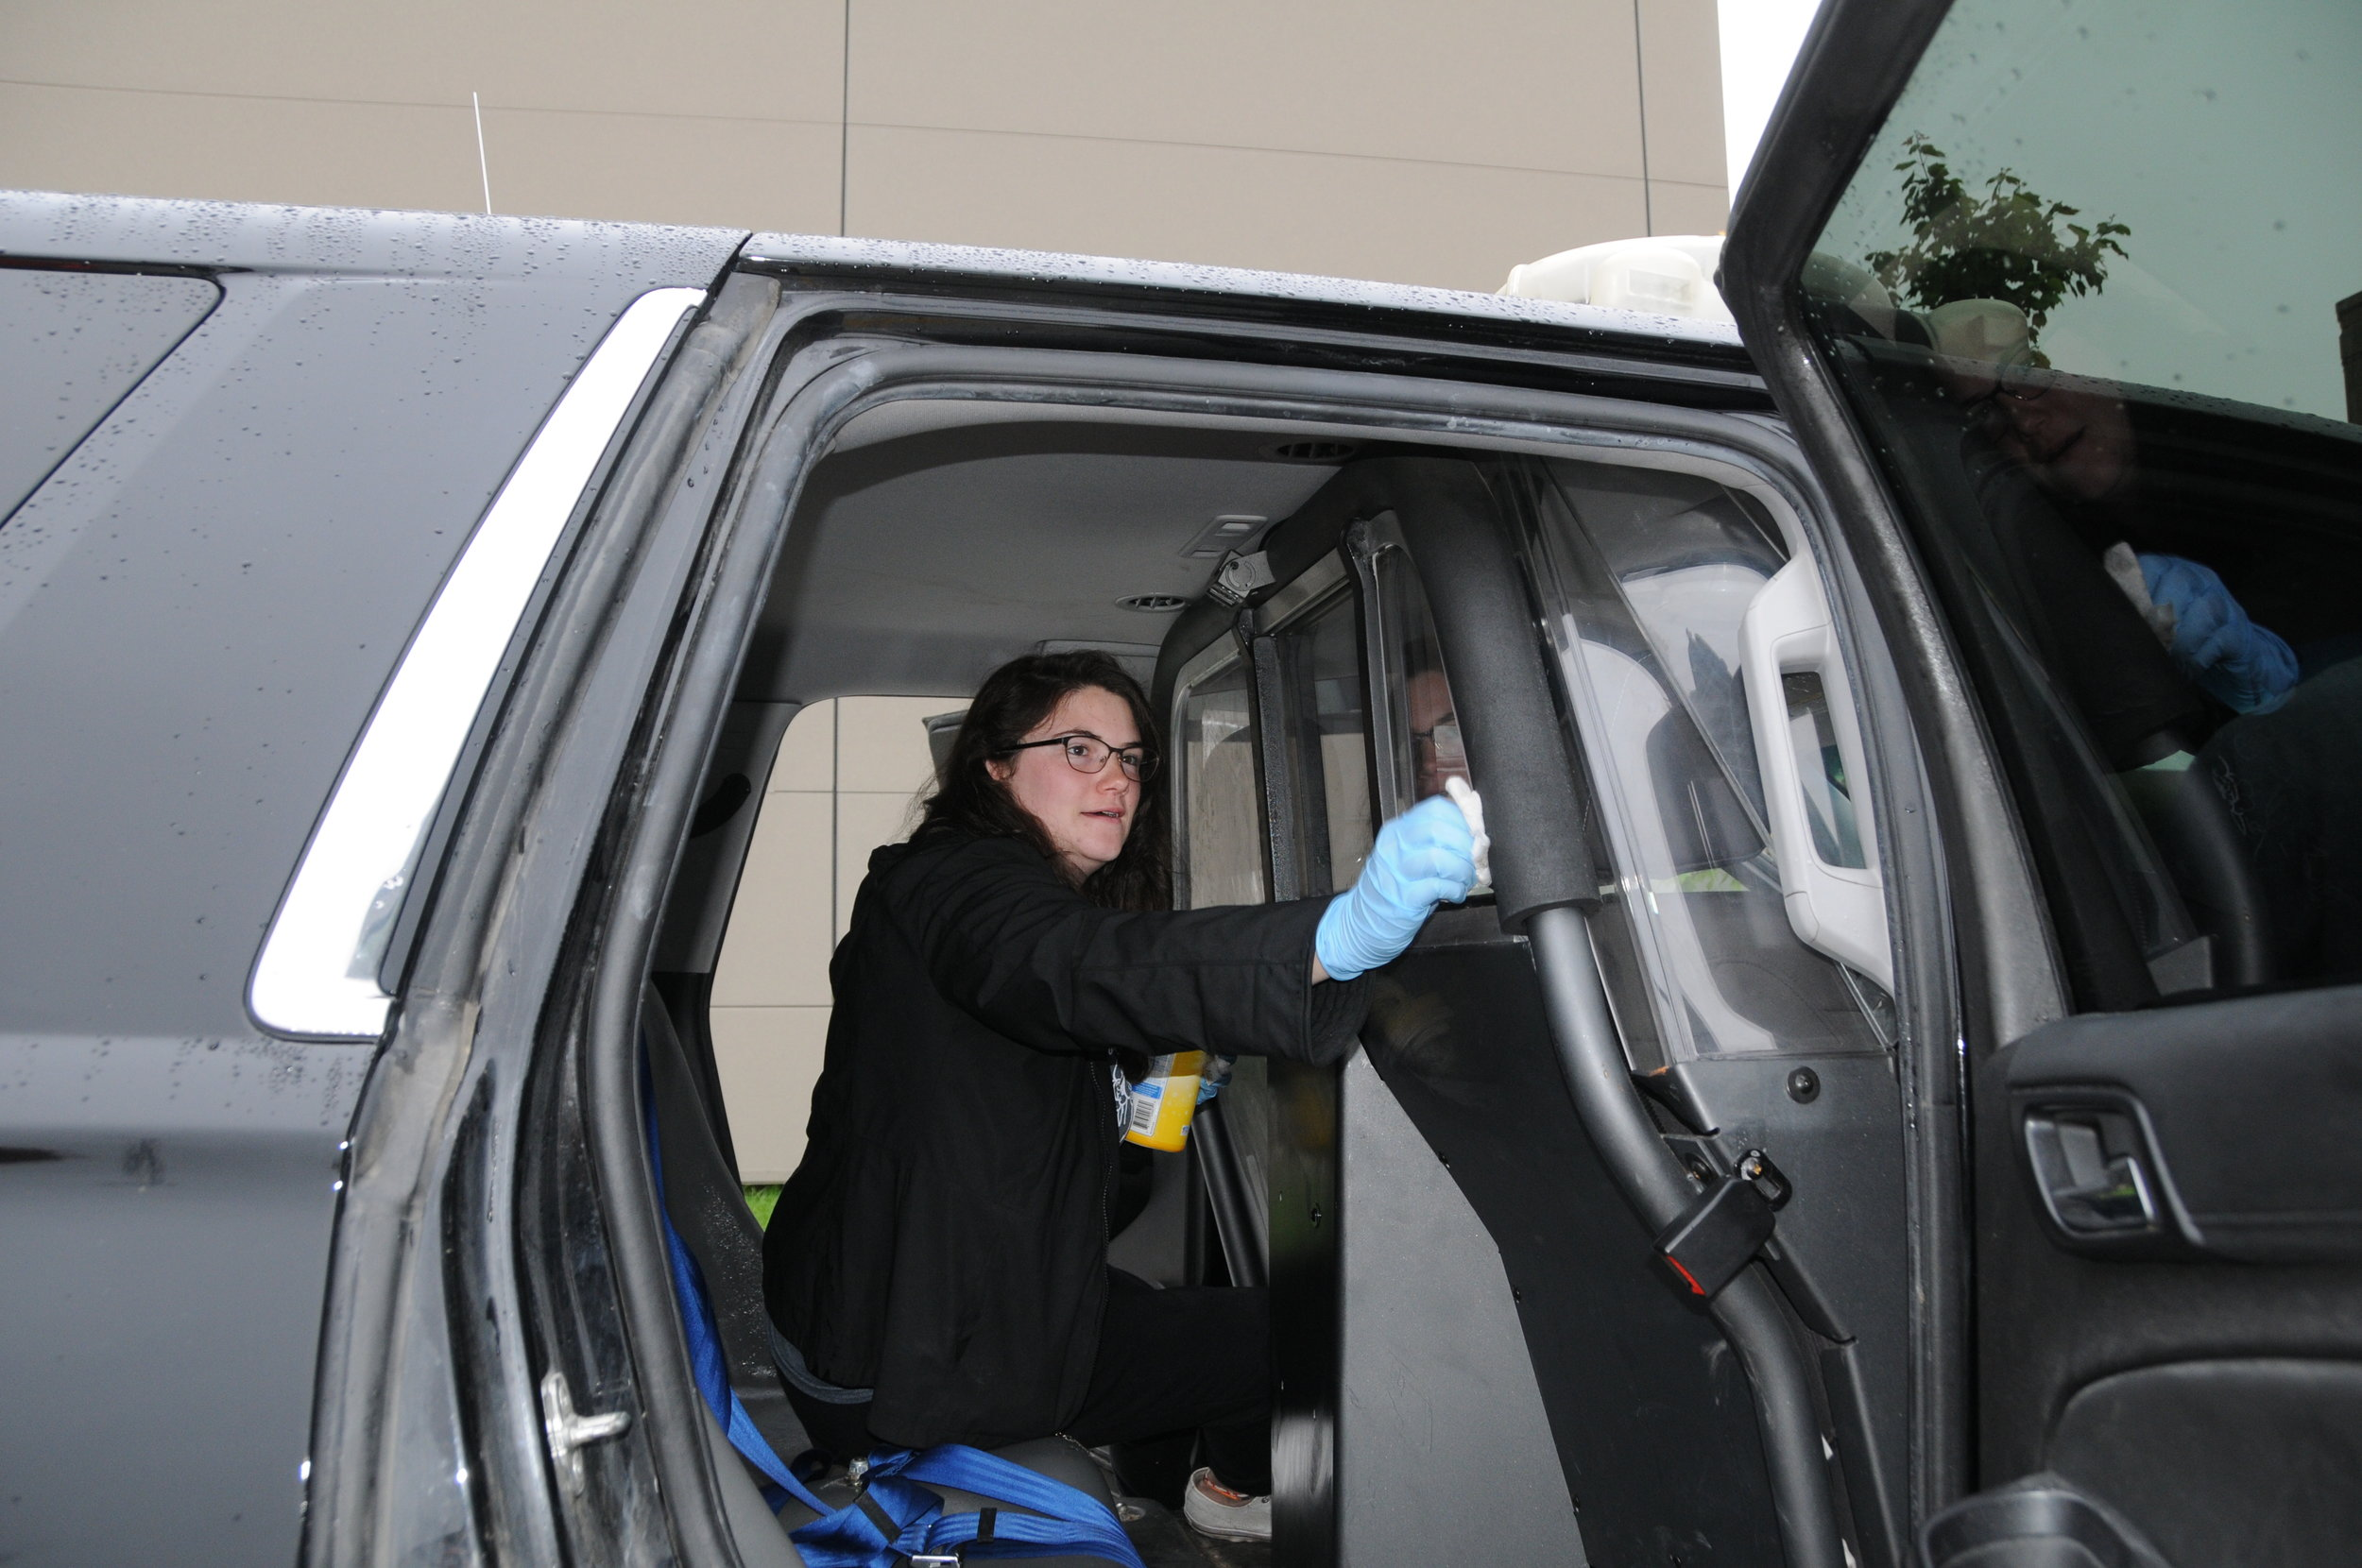 A student with Morninside College helps clean a marked patrol car at the department on Oct. 5 as part of Morningside Colleges Into the Streets volunteer project.